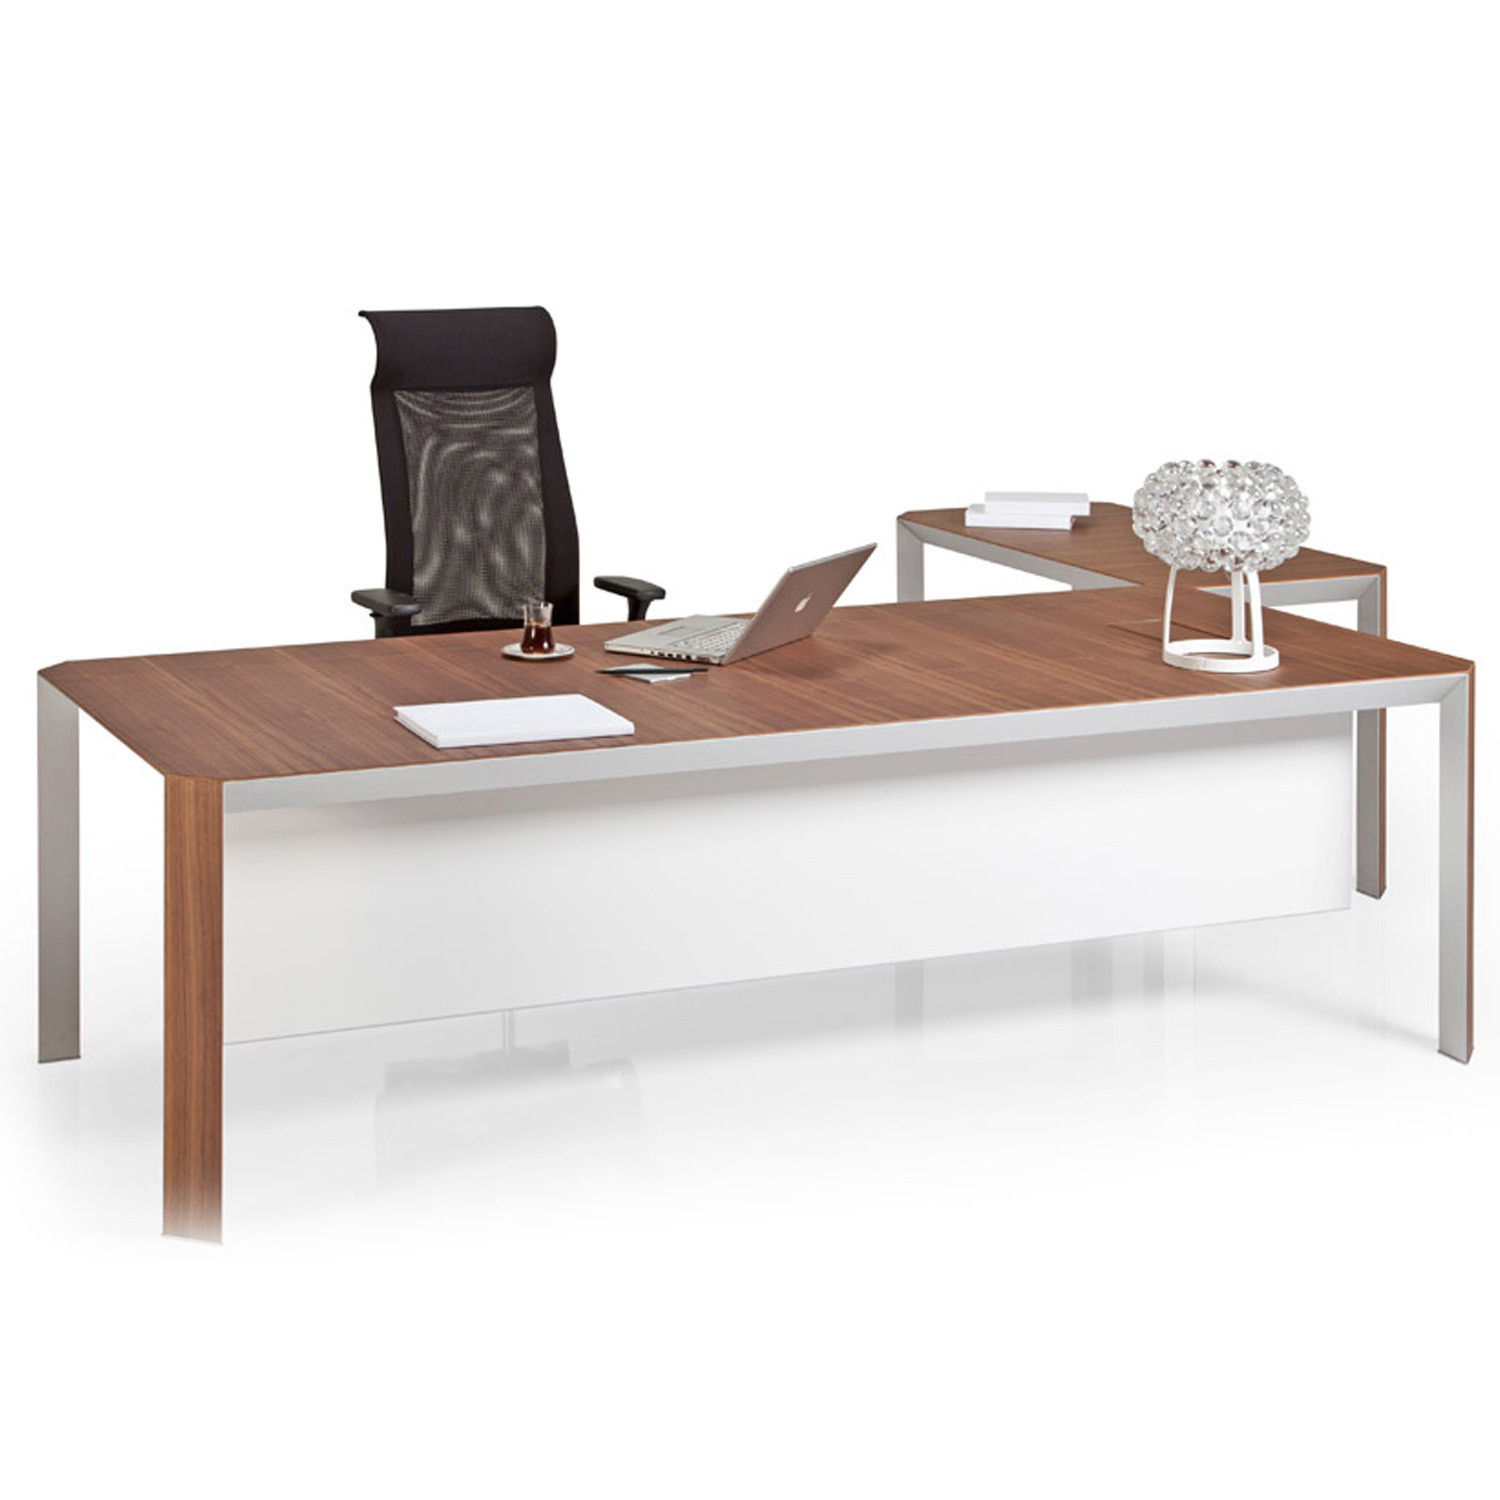 Quo Vadis Executive Office Desk